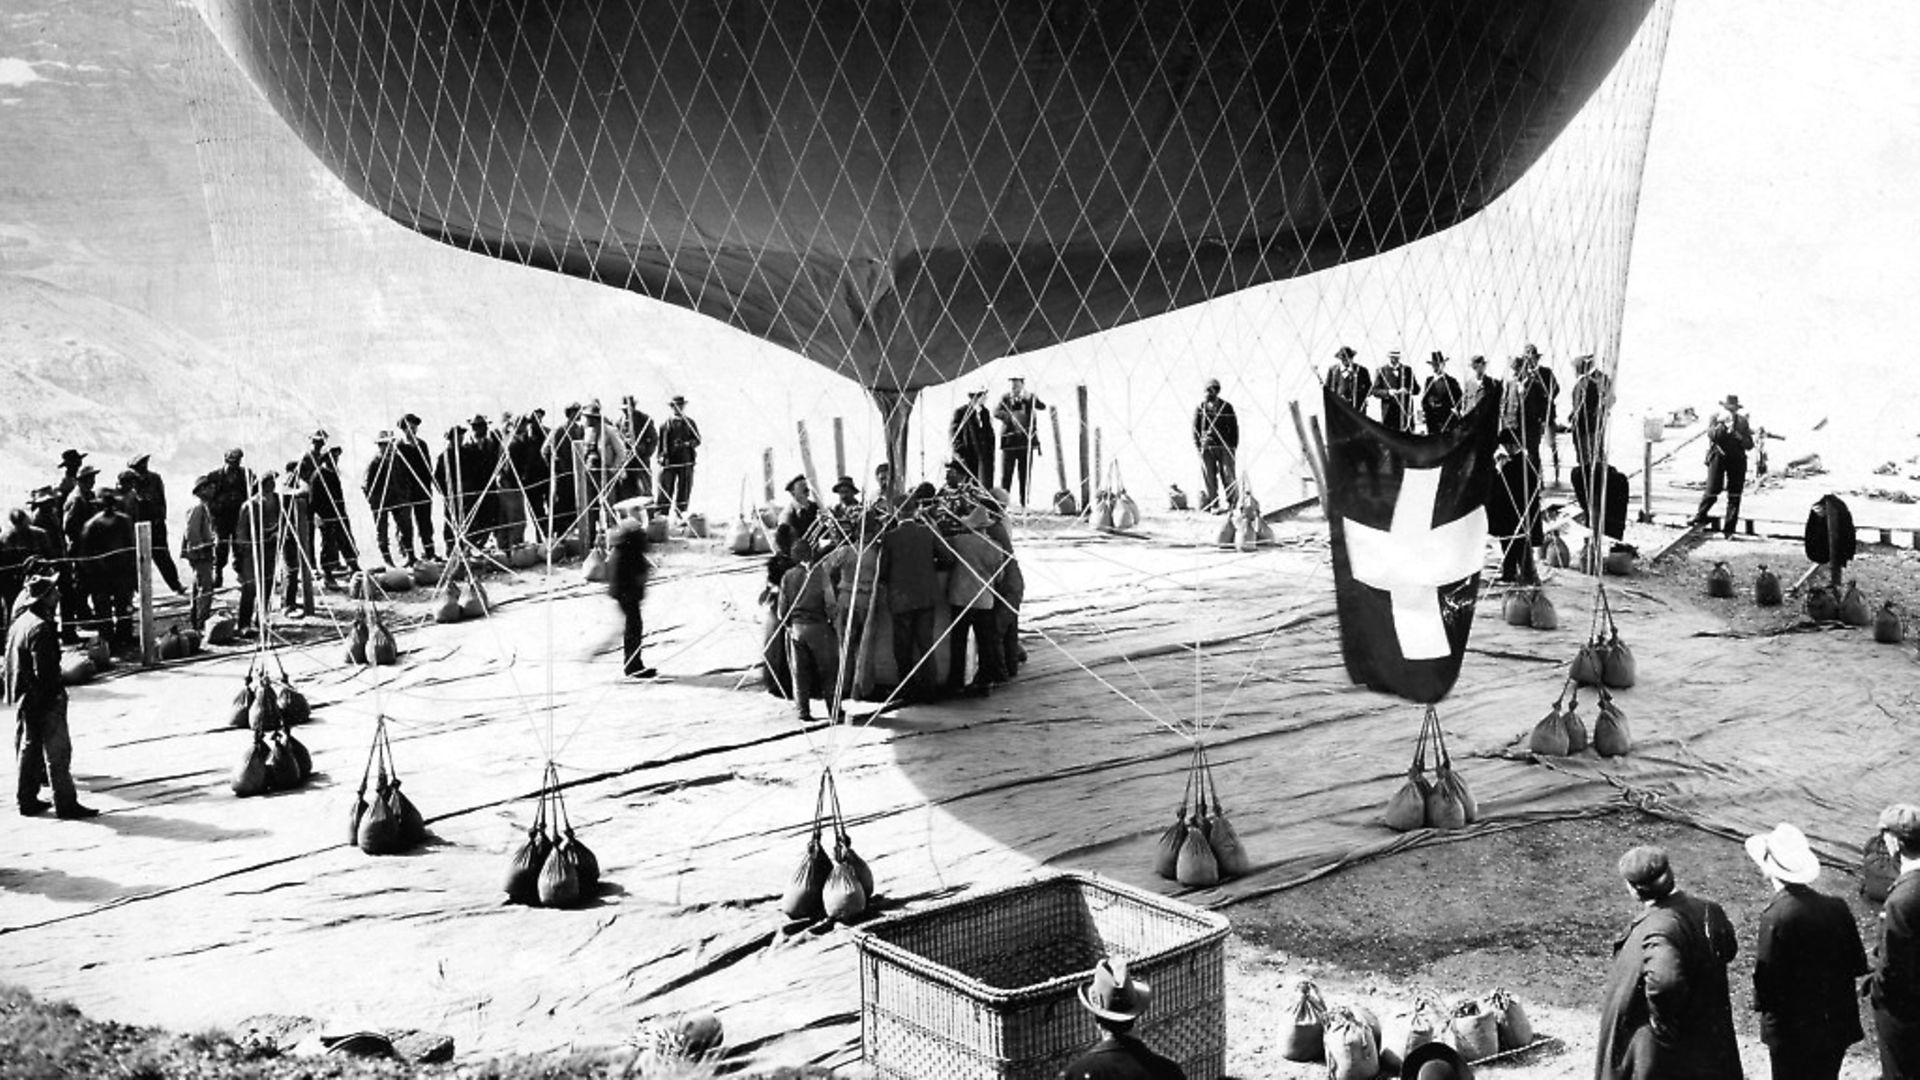 Start of a balloon ride over the Alps, filling a trial balloon, published by Berliner Illustrirte Zeitung. Picture: Eduard Spelterini. - Credit: ullsteinbild / TopFoto